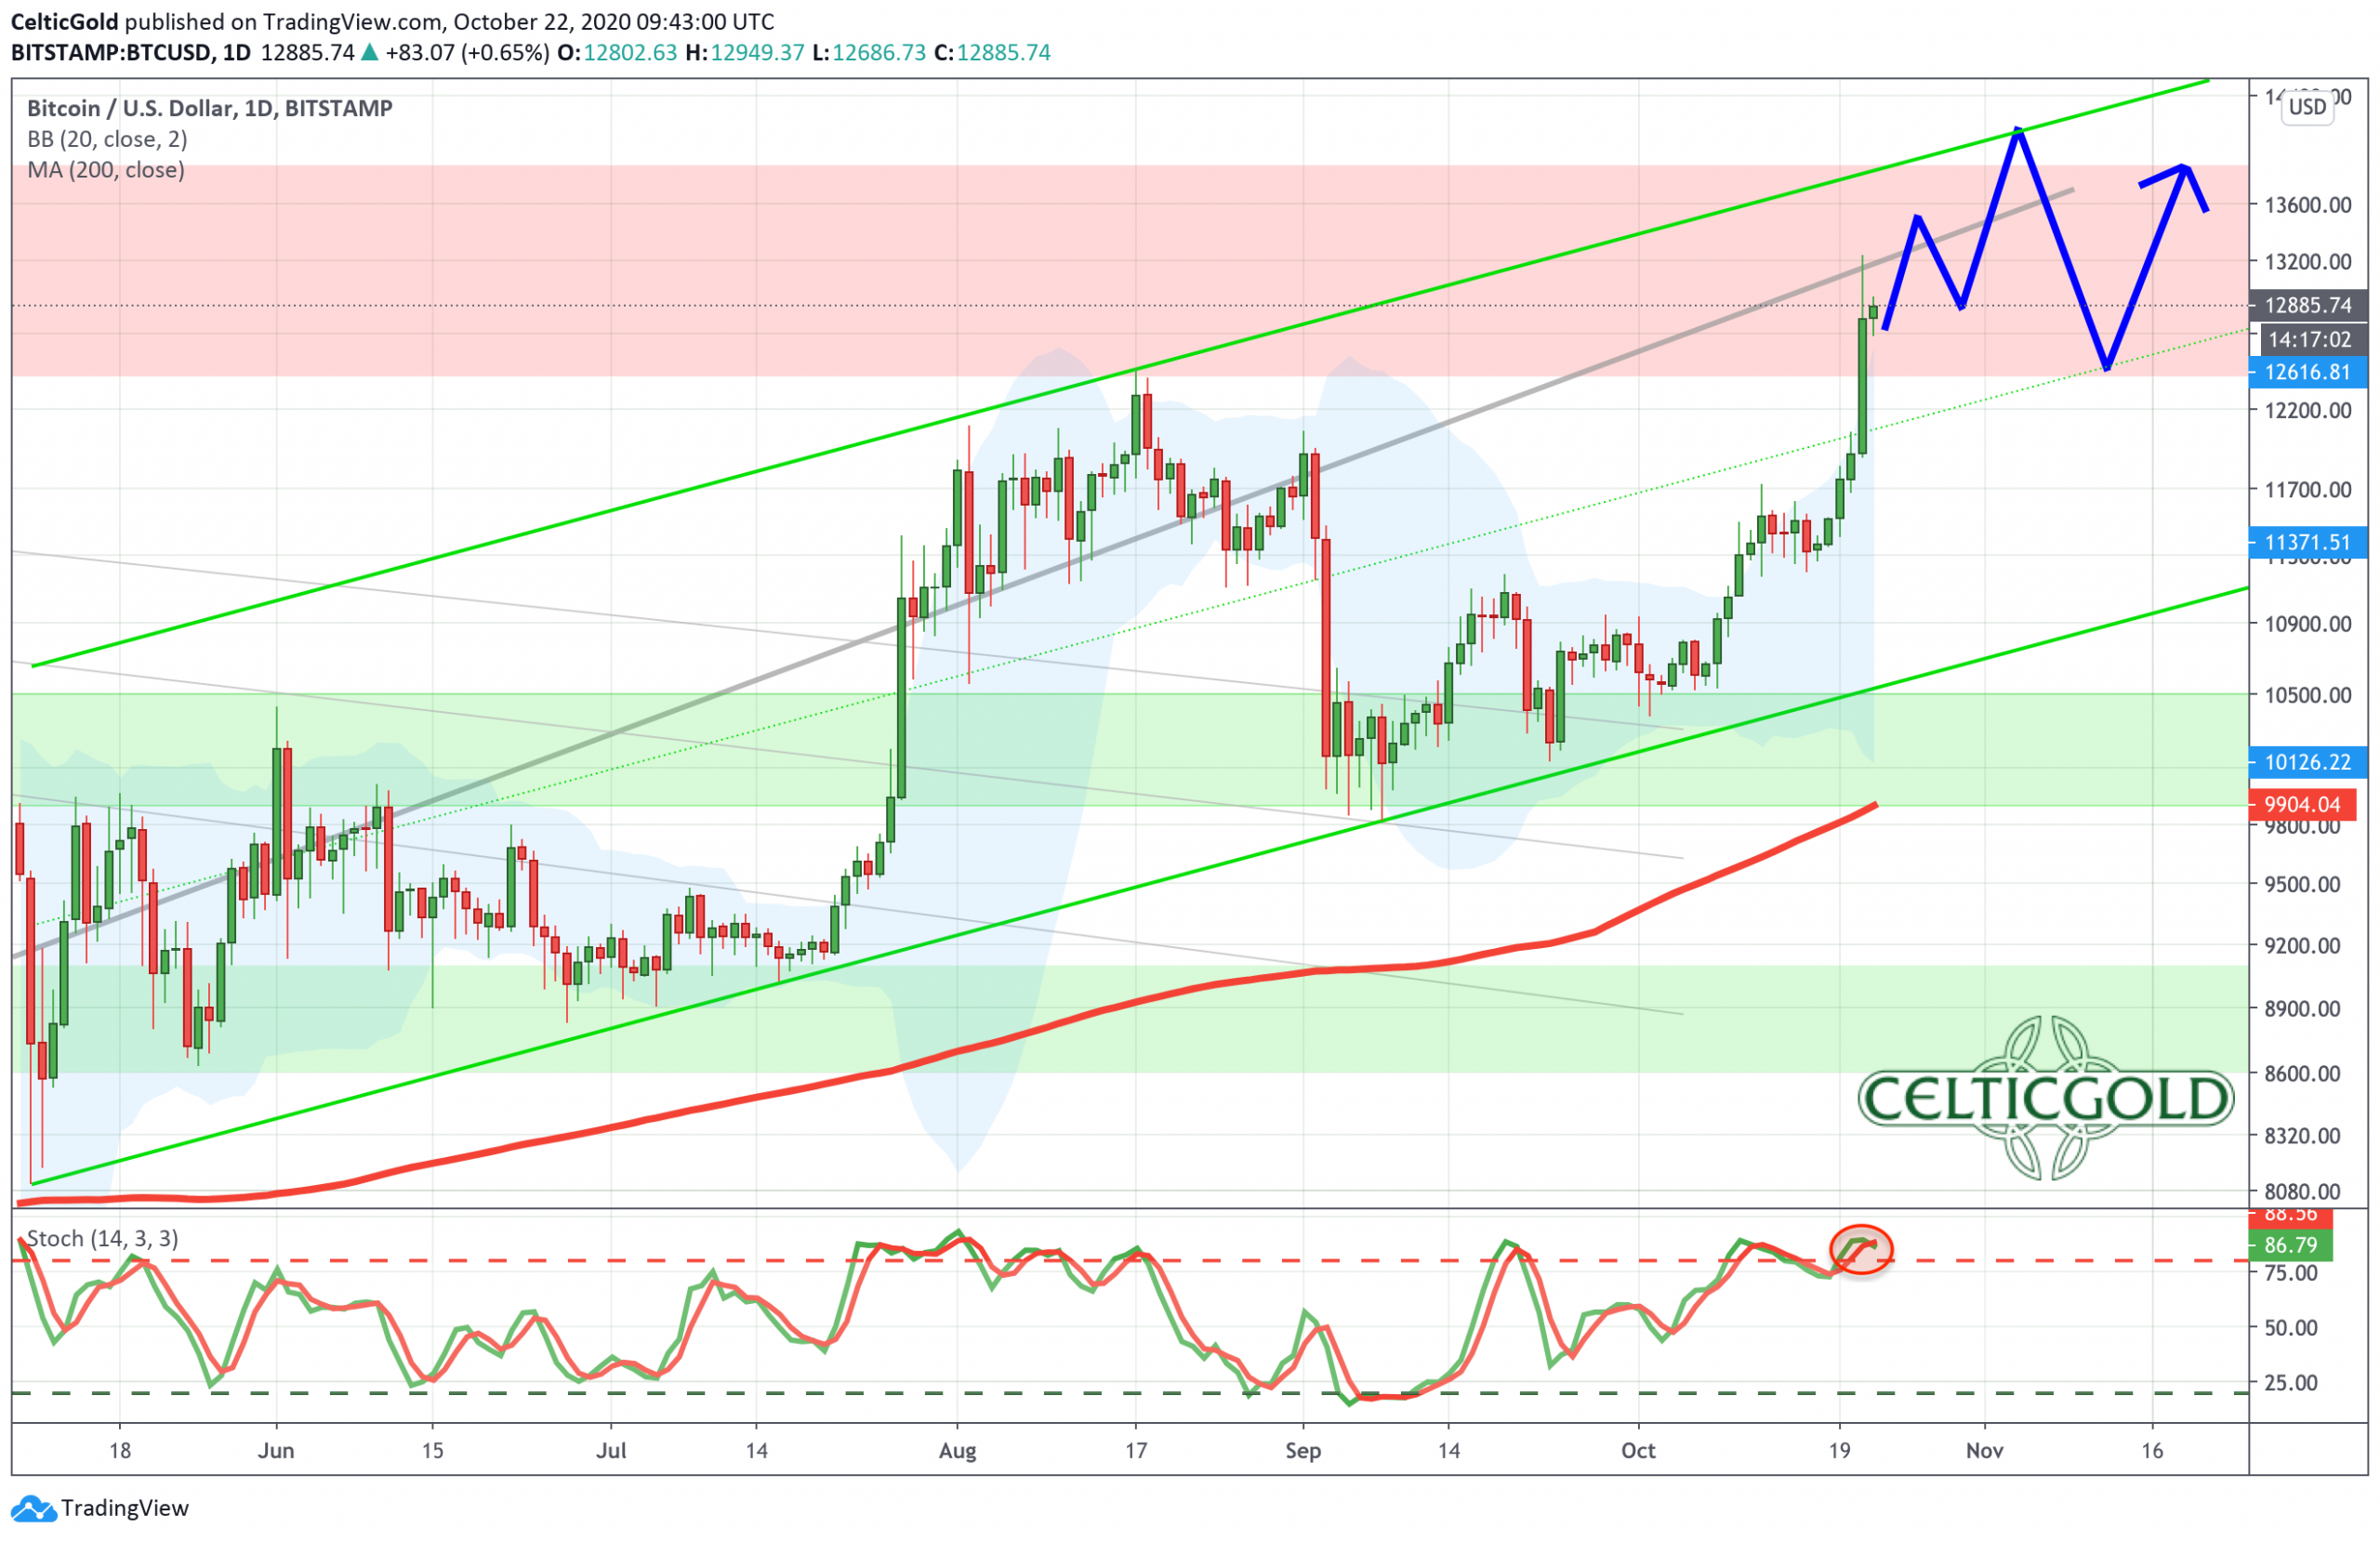 Bitcoin Daily Chart as of October 22nd 2020, Source: Tradingview. Bitcoin - Strong Performance